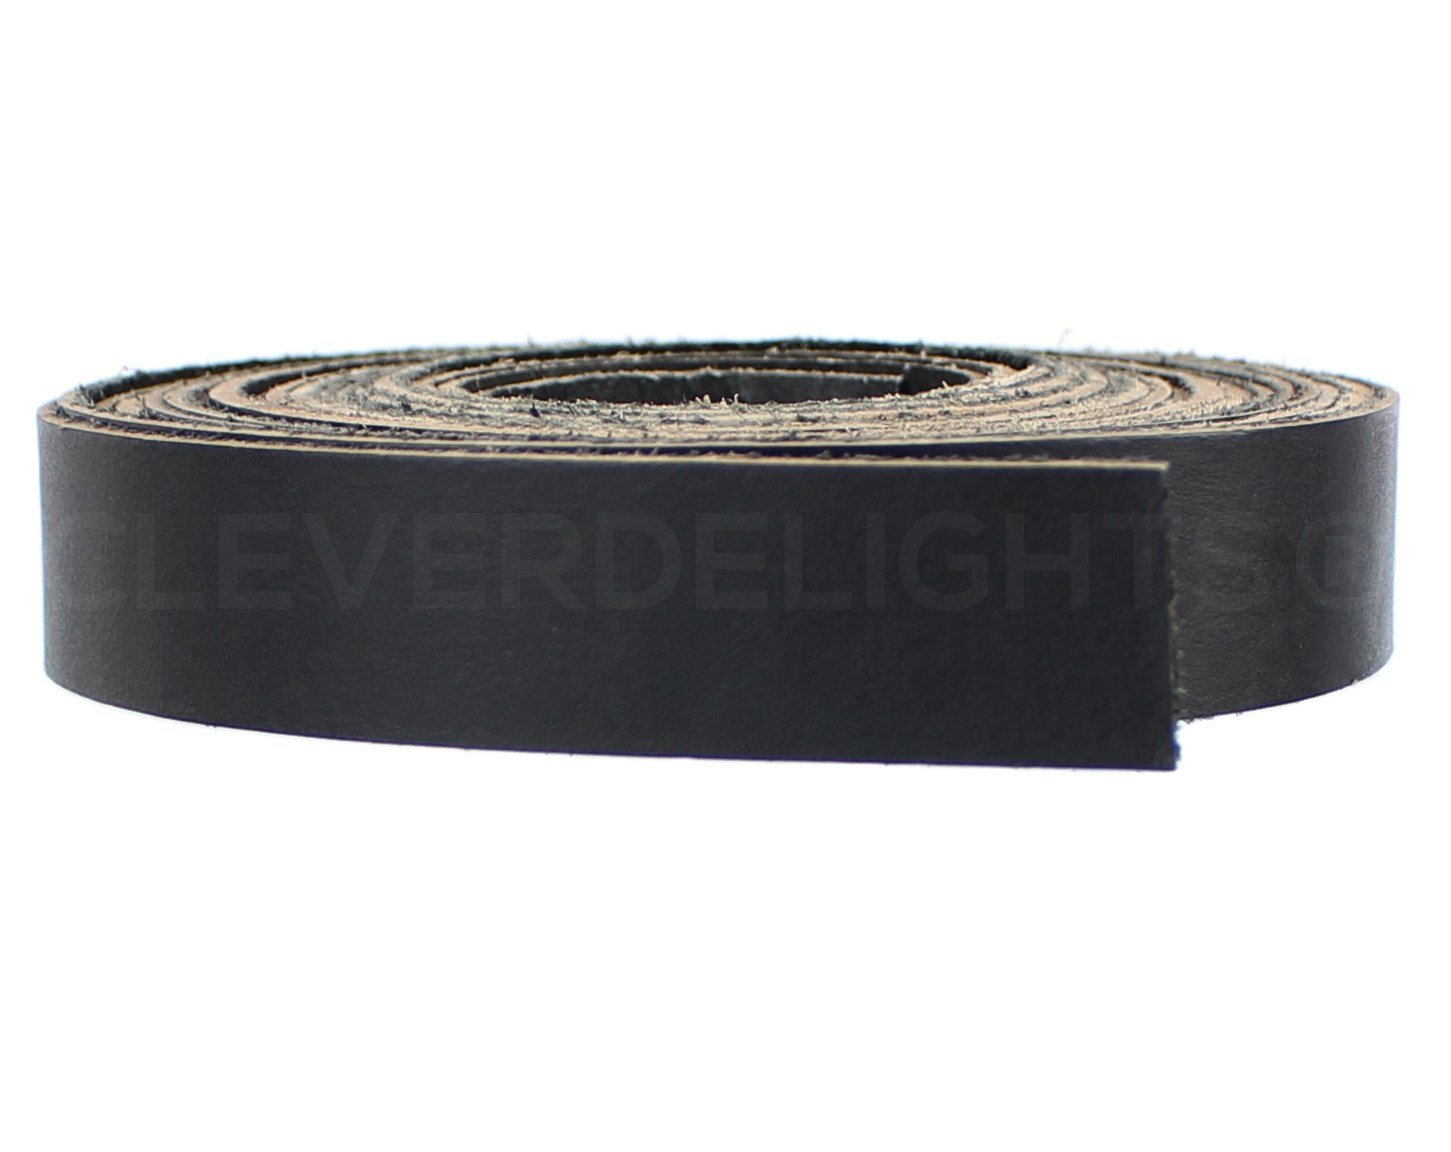 CleverDelights Premium Cowhide Leather Strap - Black - 1'' Wide - 15 Feet Long - 5oz Genuine Leather - Jewelry Craft Supply